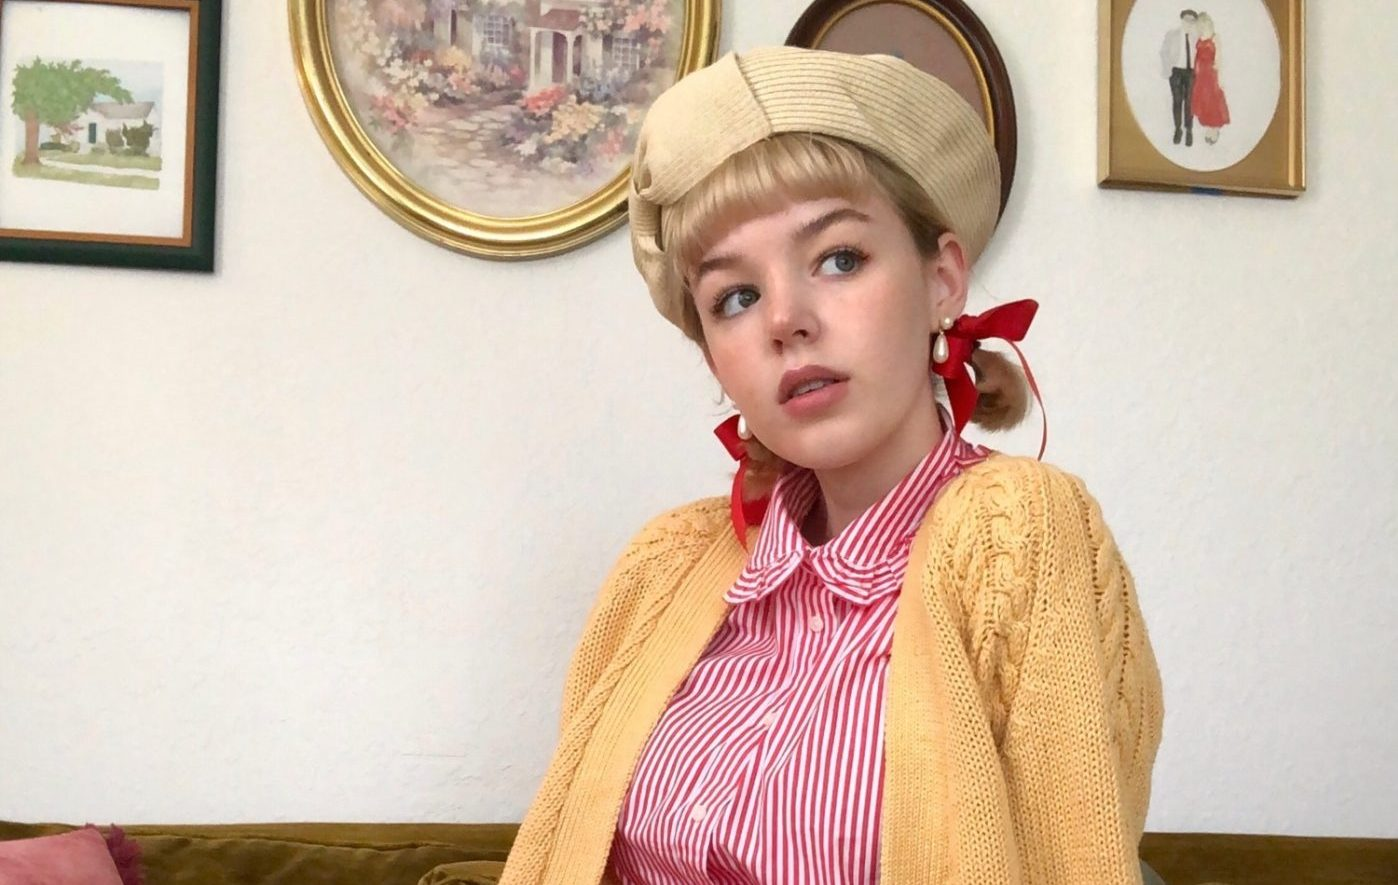 Local stylist and fashion blogger Hannah Ruth describes her style as a mix of vintage, Victorian and modern fashion trends.